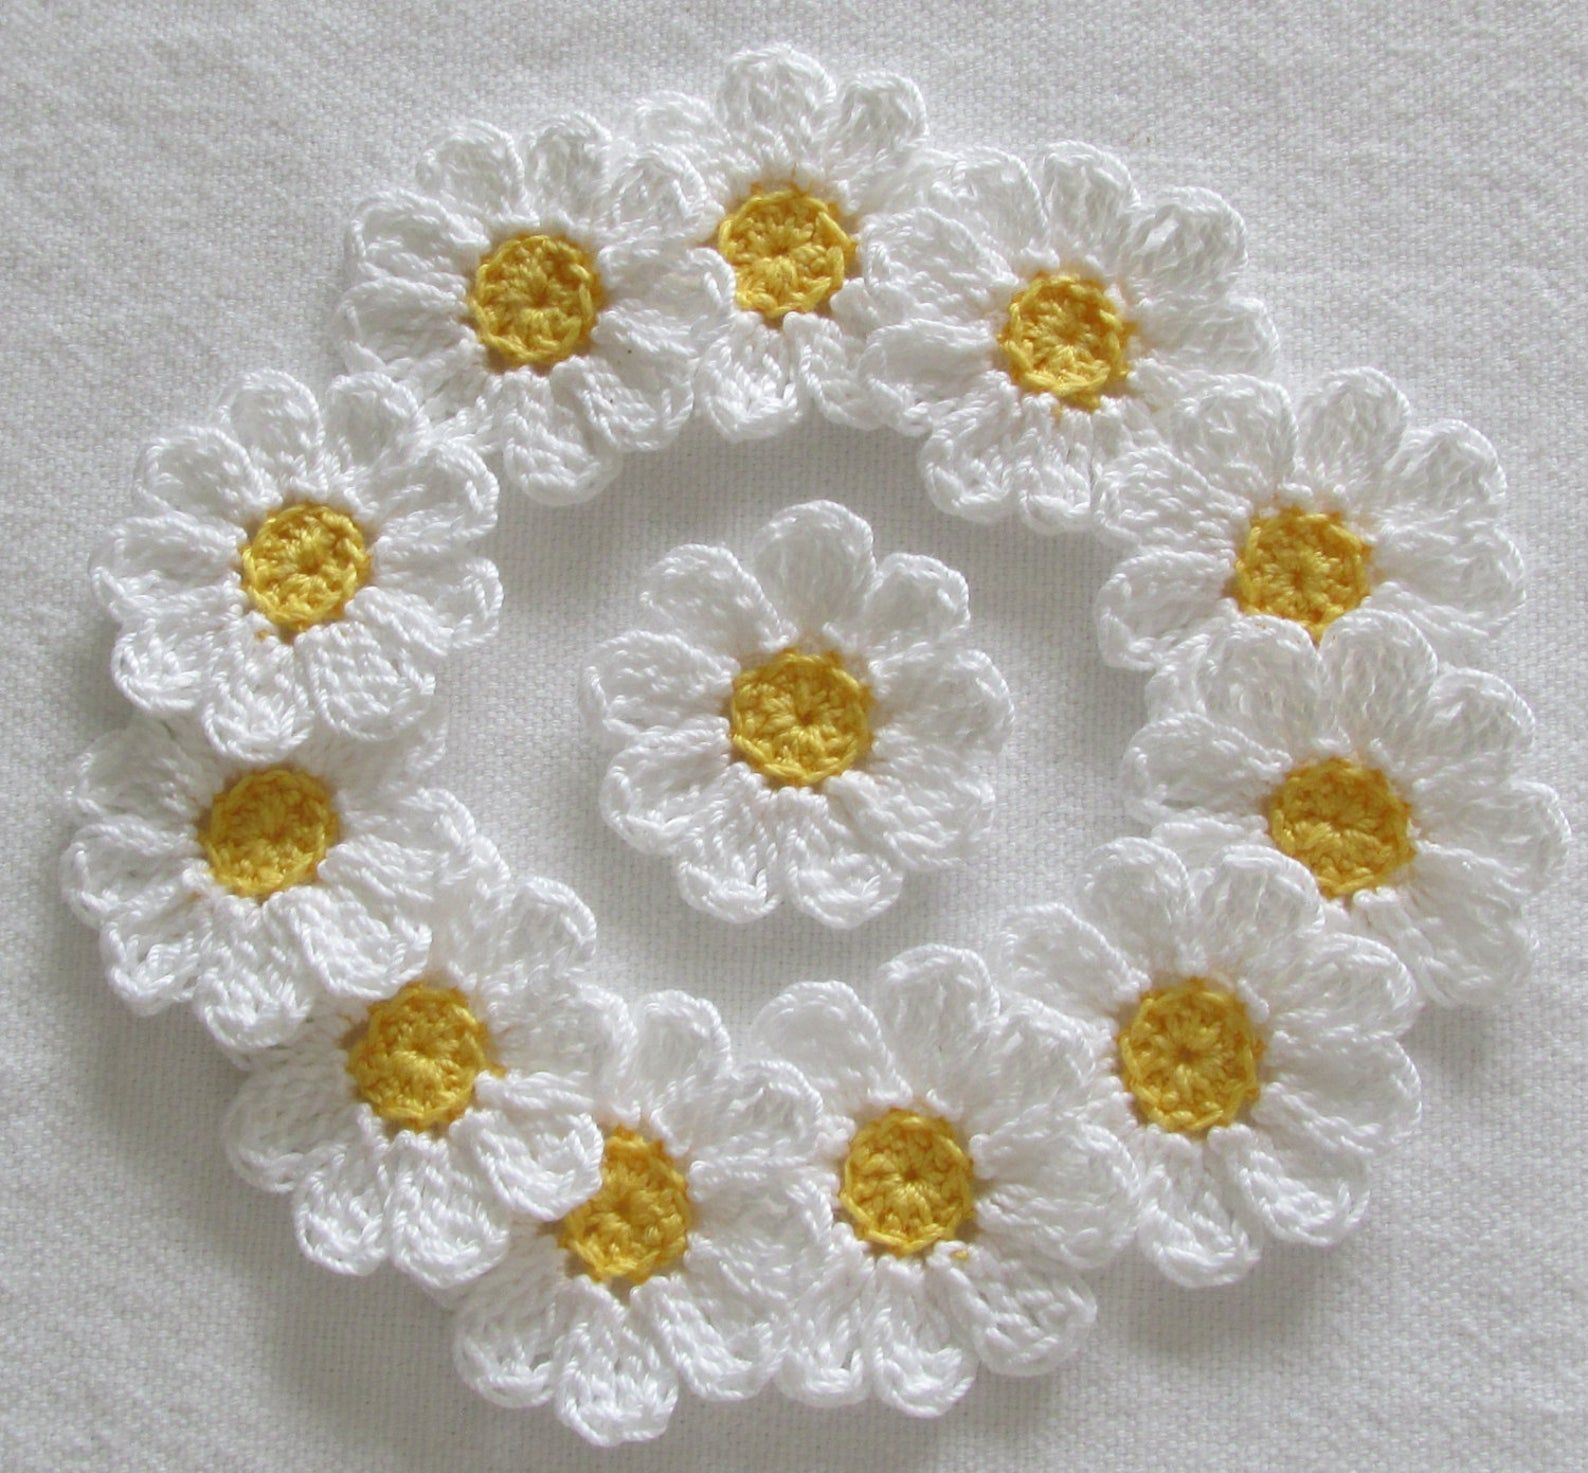 Lot of small crochet flowers in cotton